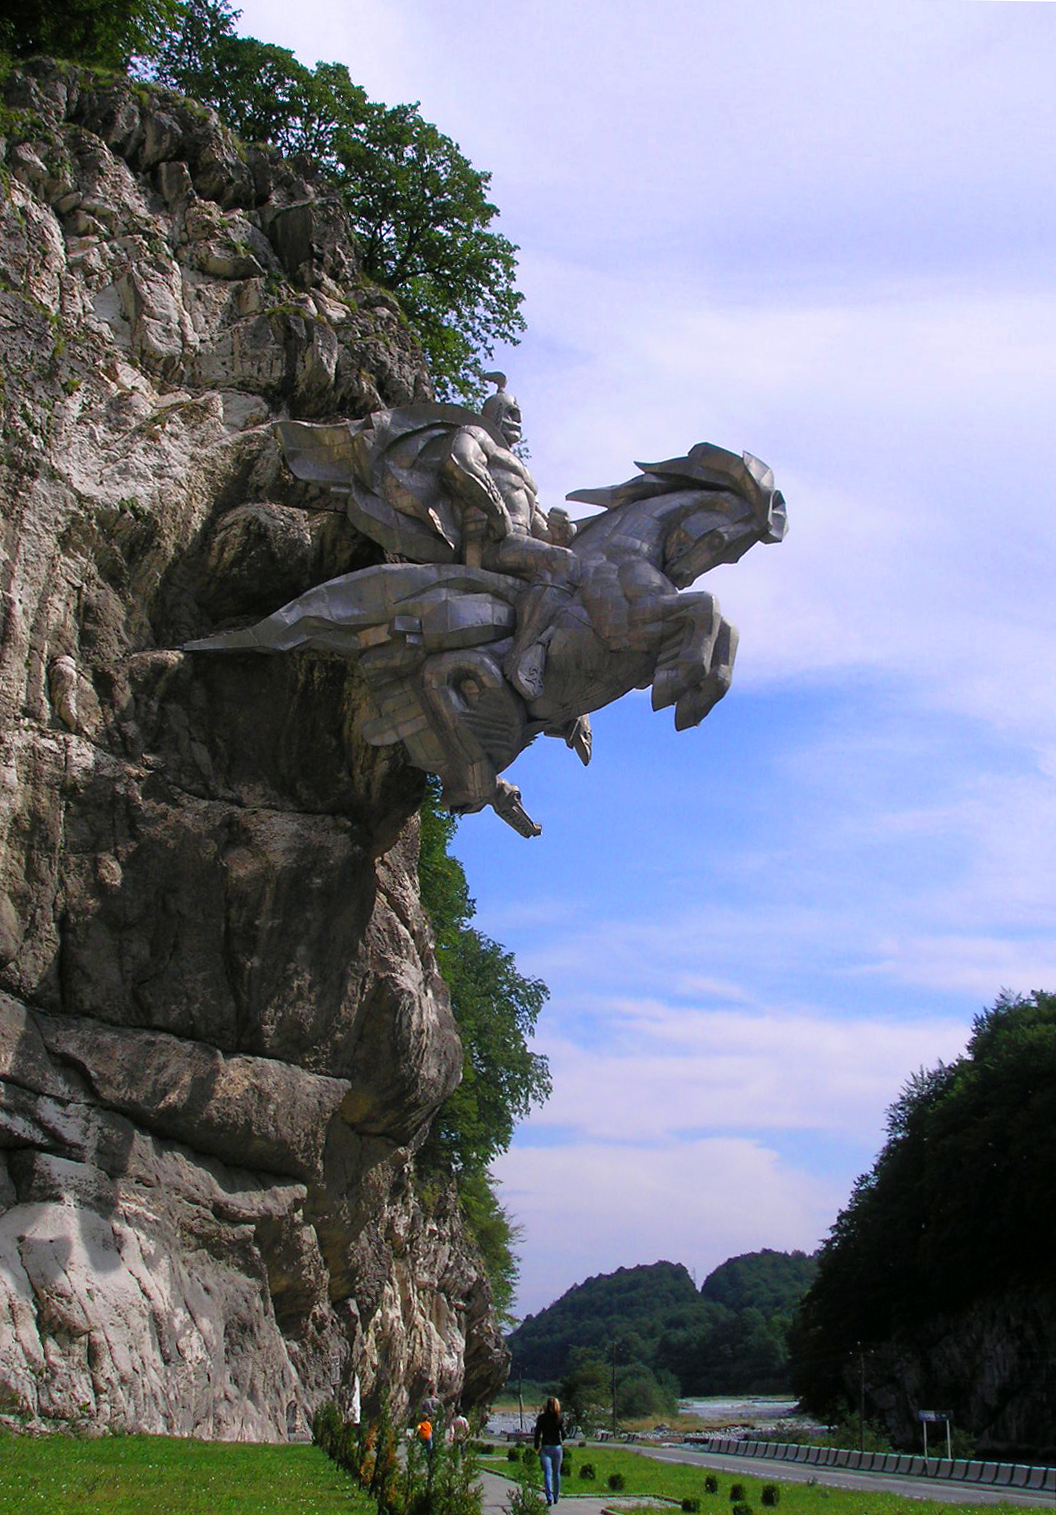 Statue of St. George in North Ossetia